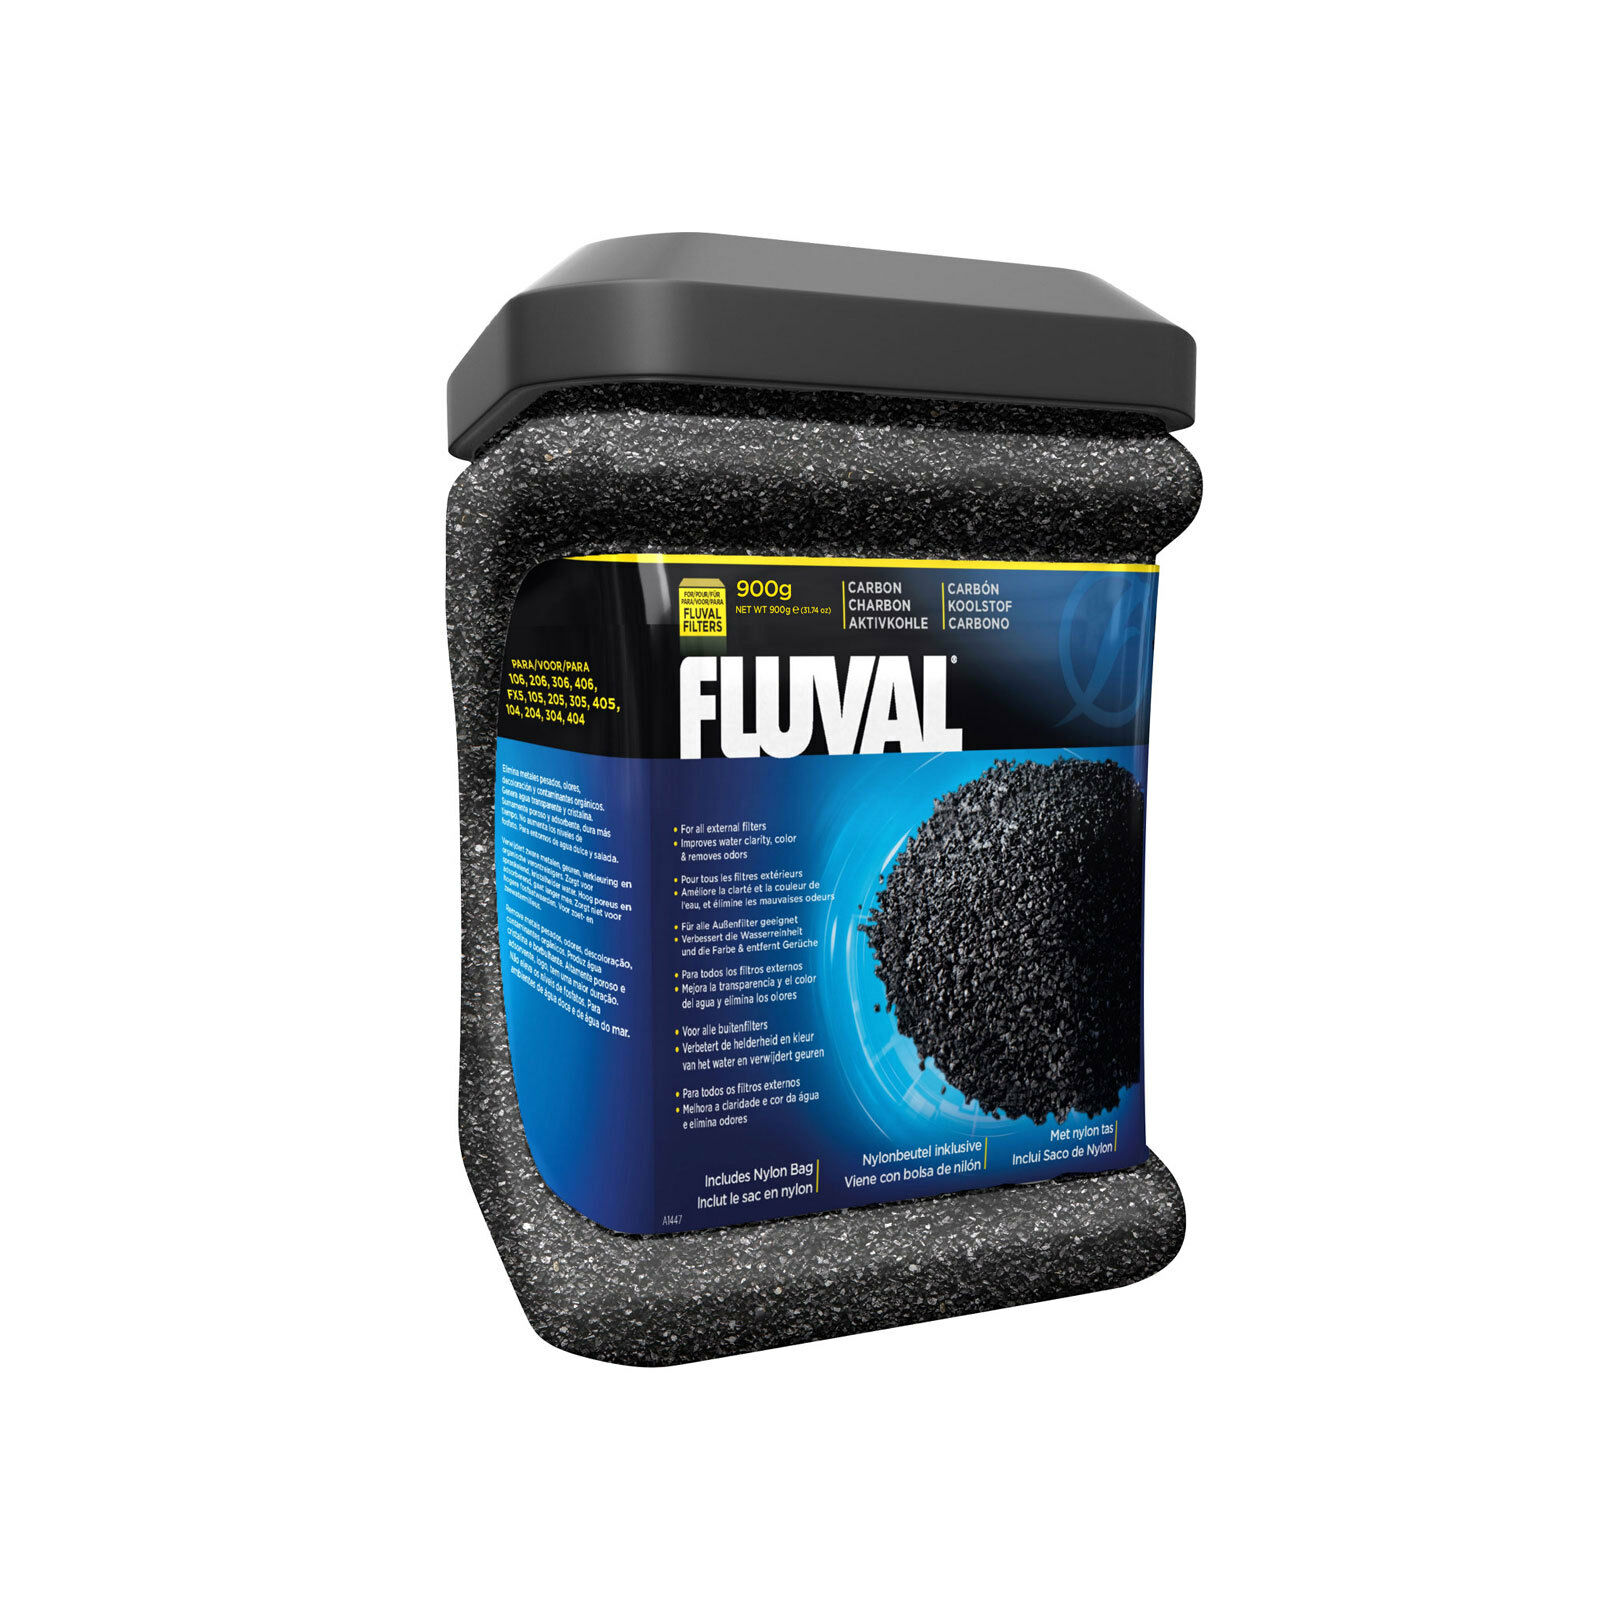 Fluval Carbon, 900g (31.74 oz) External Filter 04/05/FX5/06 Media